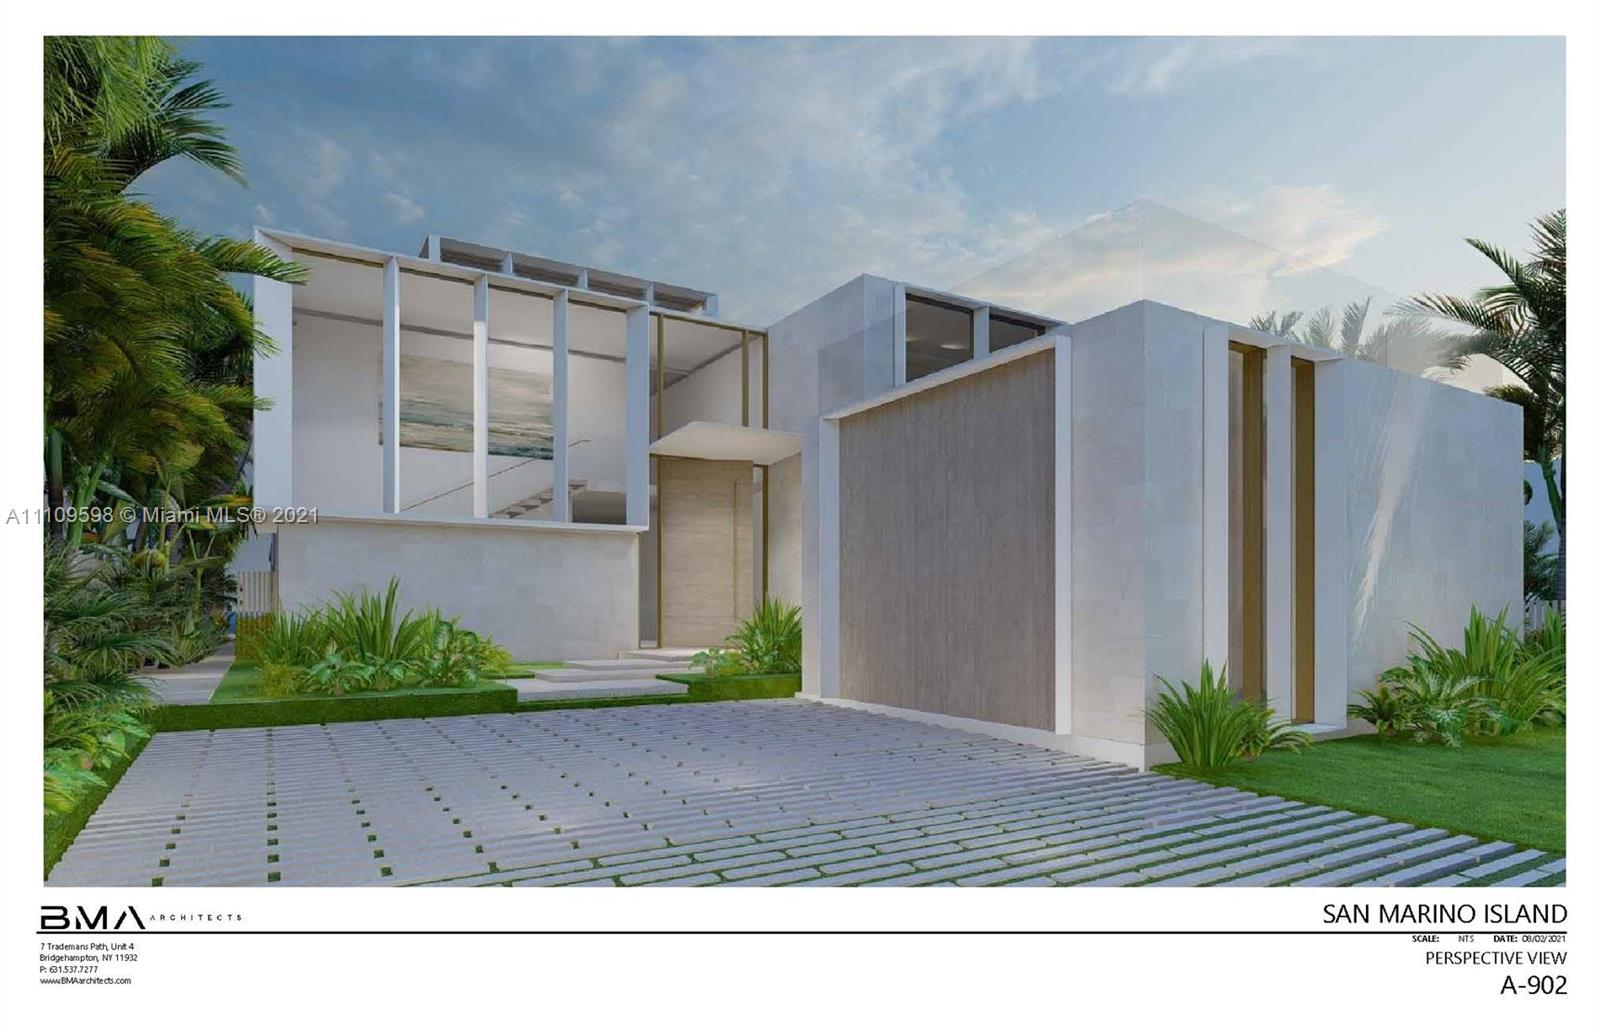 One of the Last remaining South West Facing Homes on Venetian Islands. This home will be delivered with impeccable finishes and one of the best Skyline Views Miami has to offer.  Designed by Award Winning BMA Architects this home will be in a class of its own. The land and plans can also be purchased separately for 16m.  Please call Listing agent for additional info. Floor plans attached.